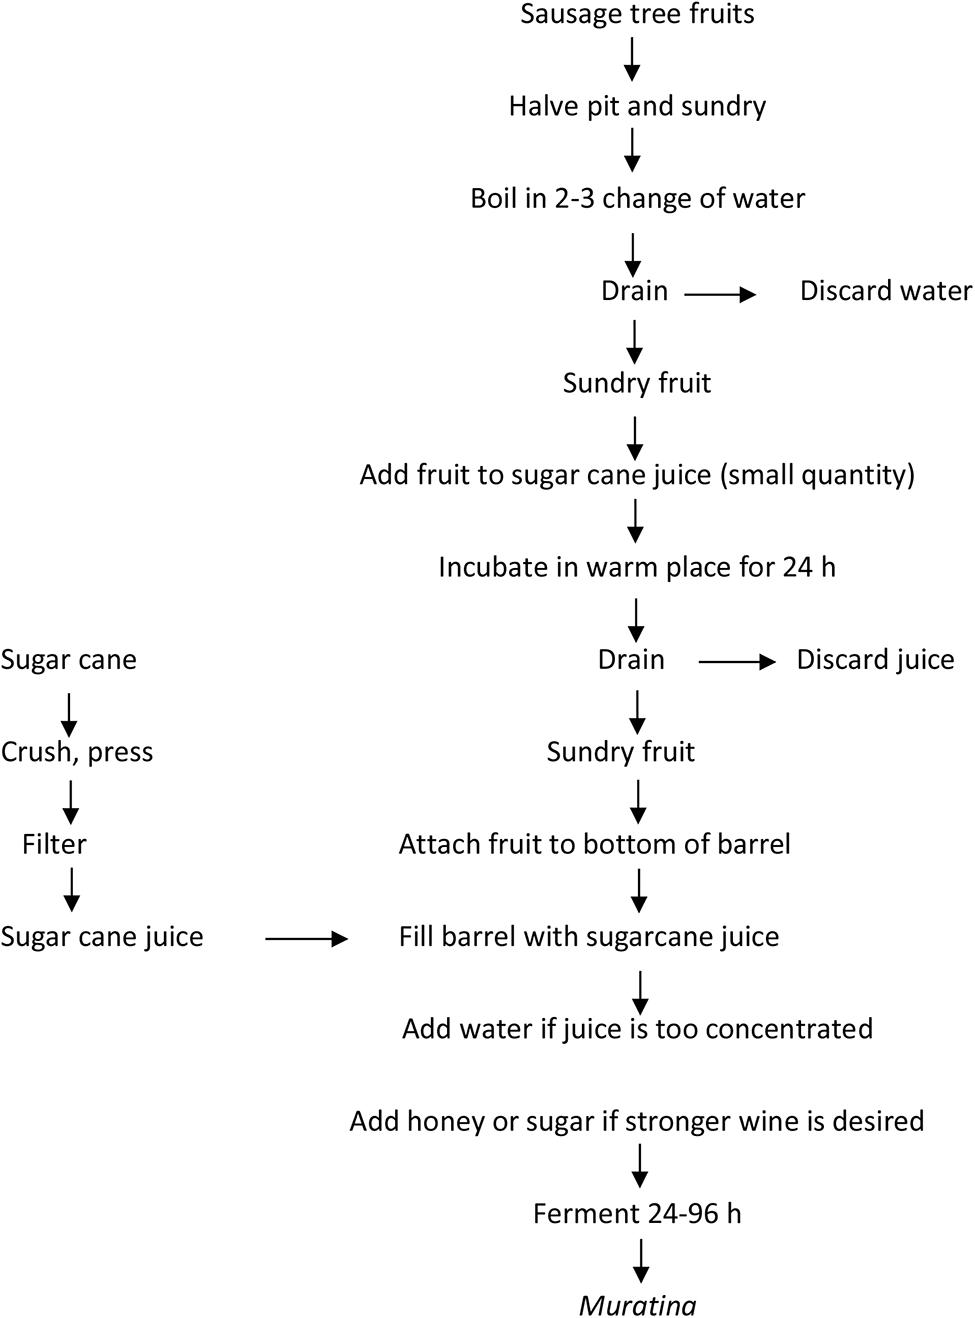 hight resolution of www frontiersin org figure 1 flow diagram of fermented sausage tree fruit